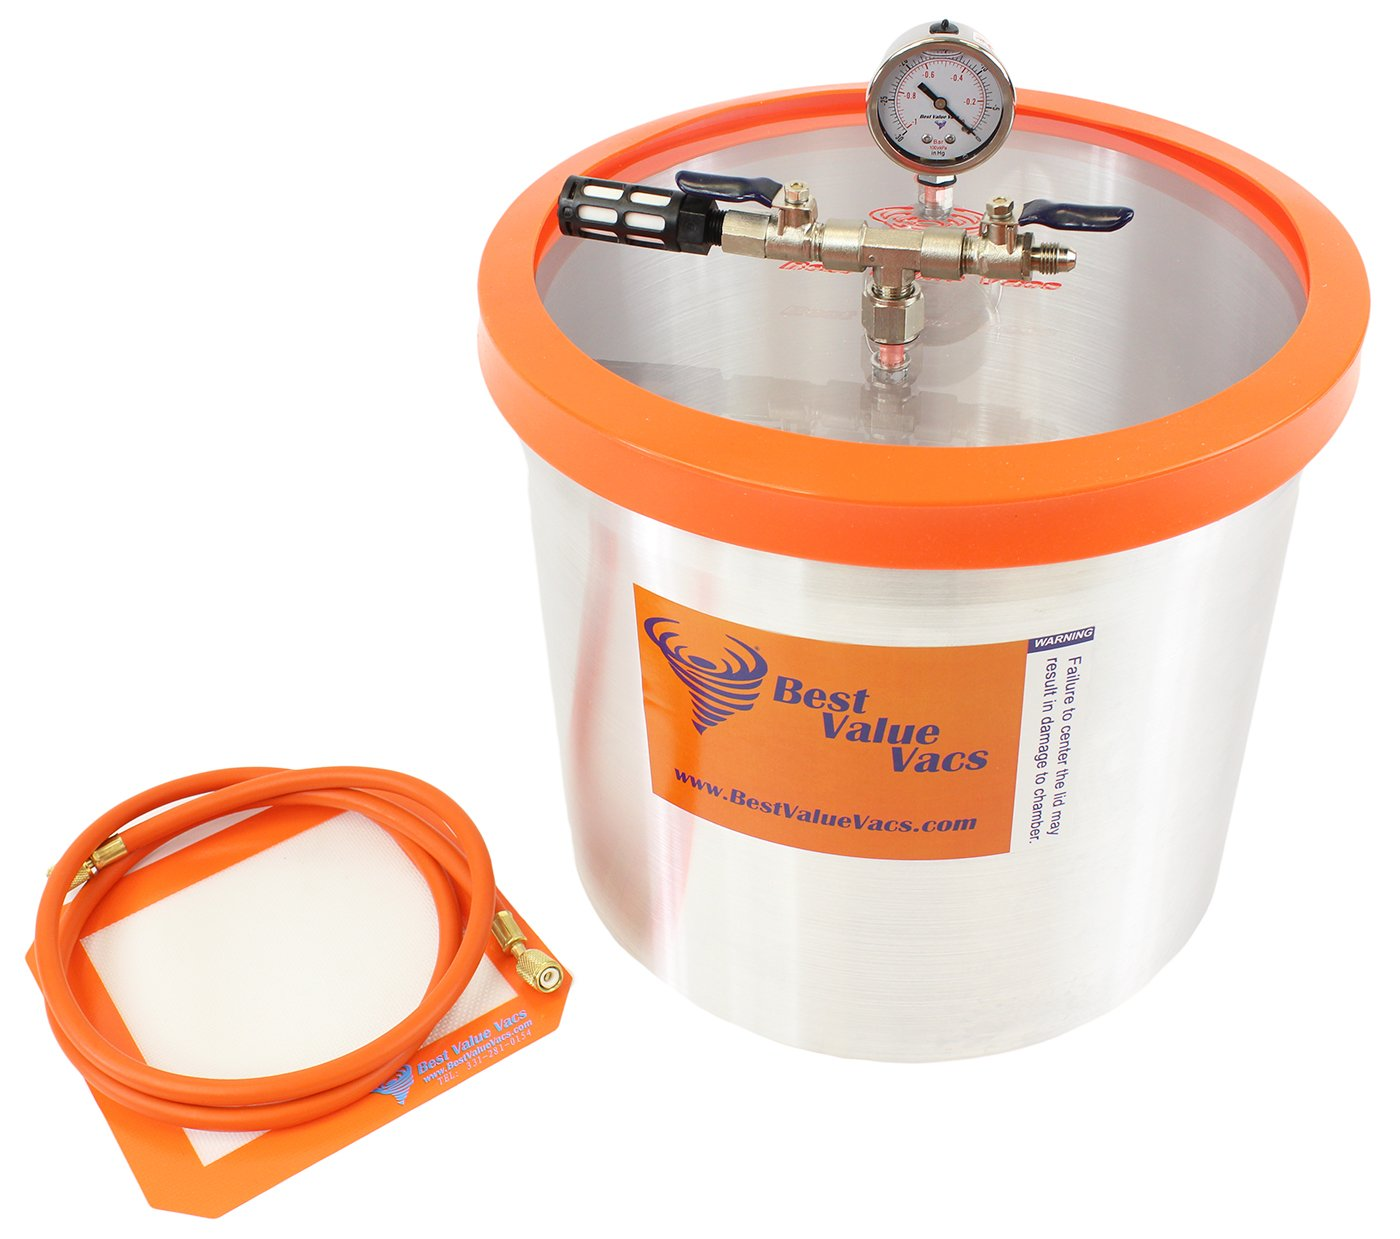 Best Value Vacs 5 Gallon Aluminum Vacuum and Degassing Chamber- Purge, Degas, Silicone, Resin, Epoxy